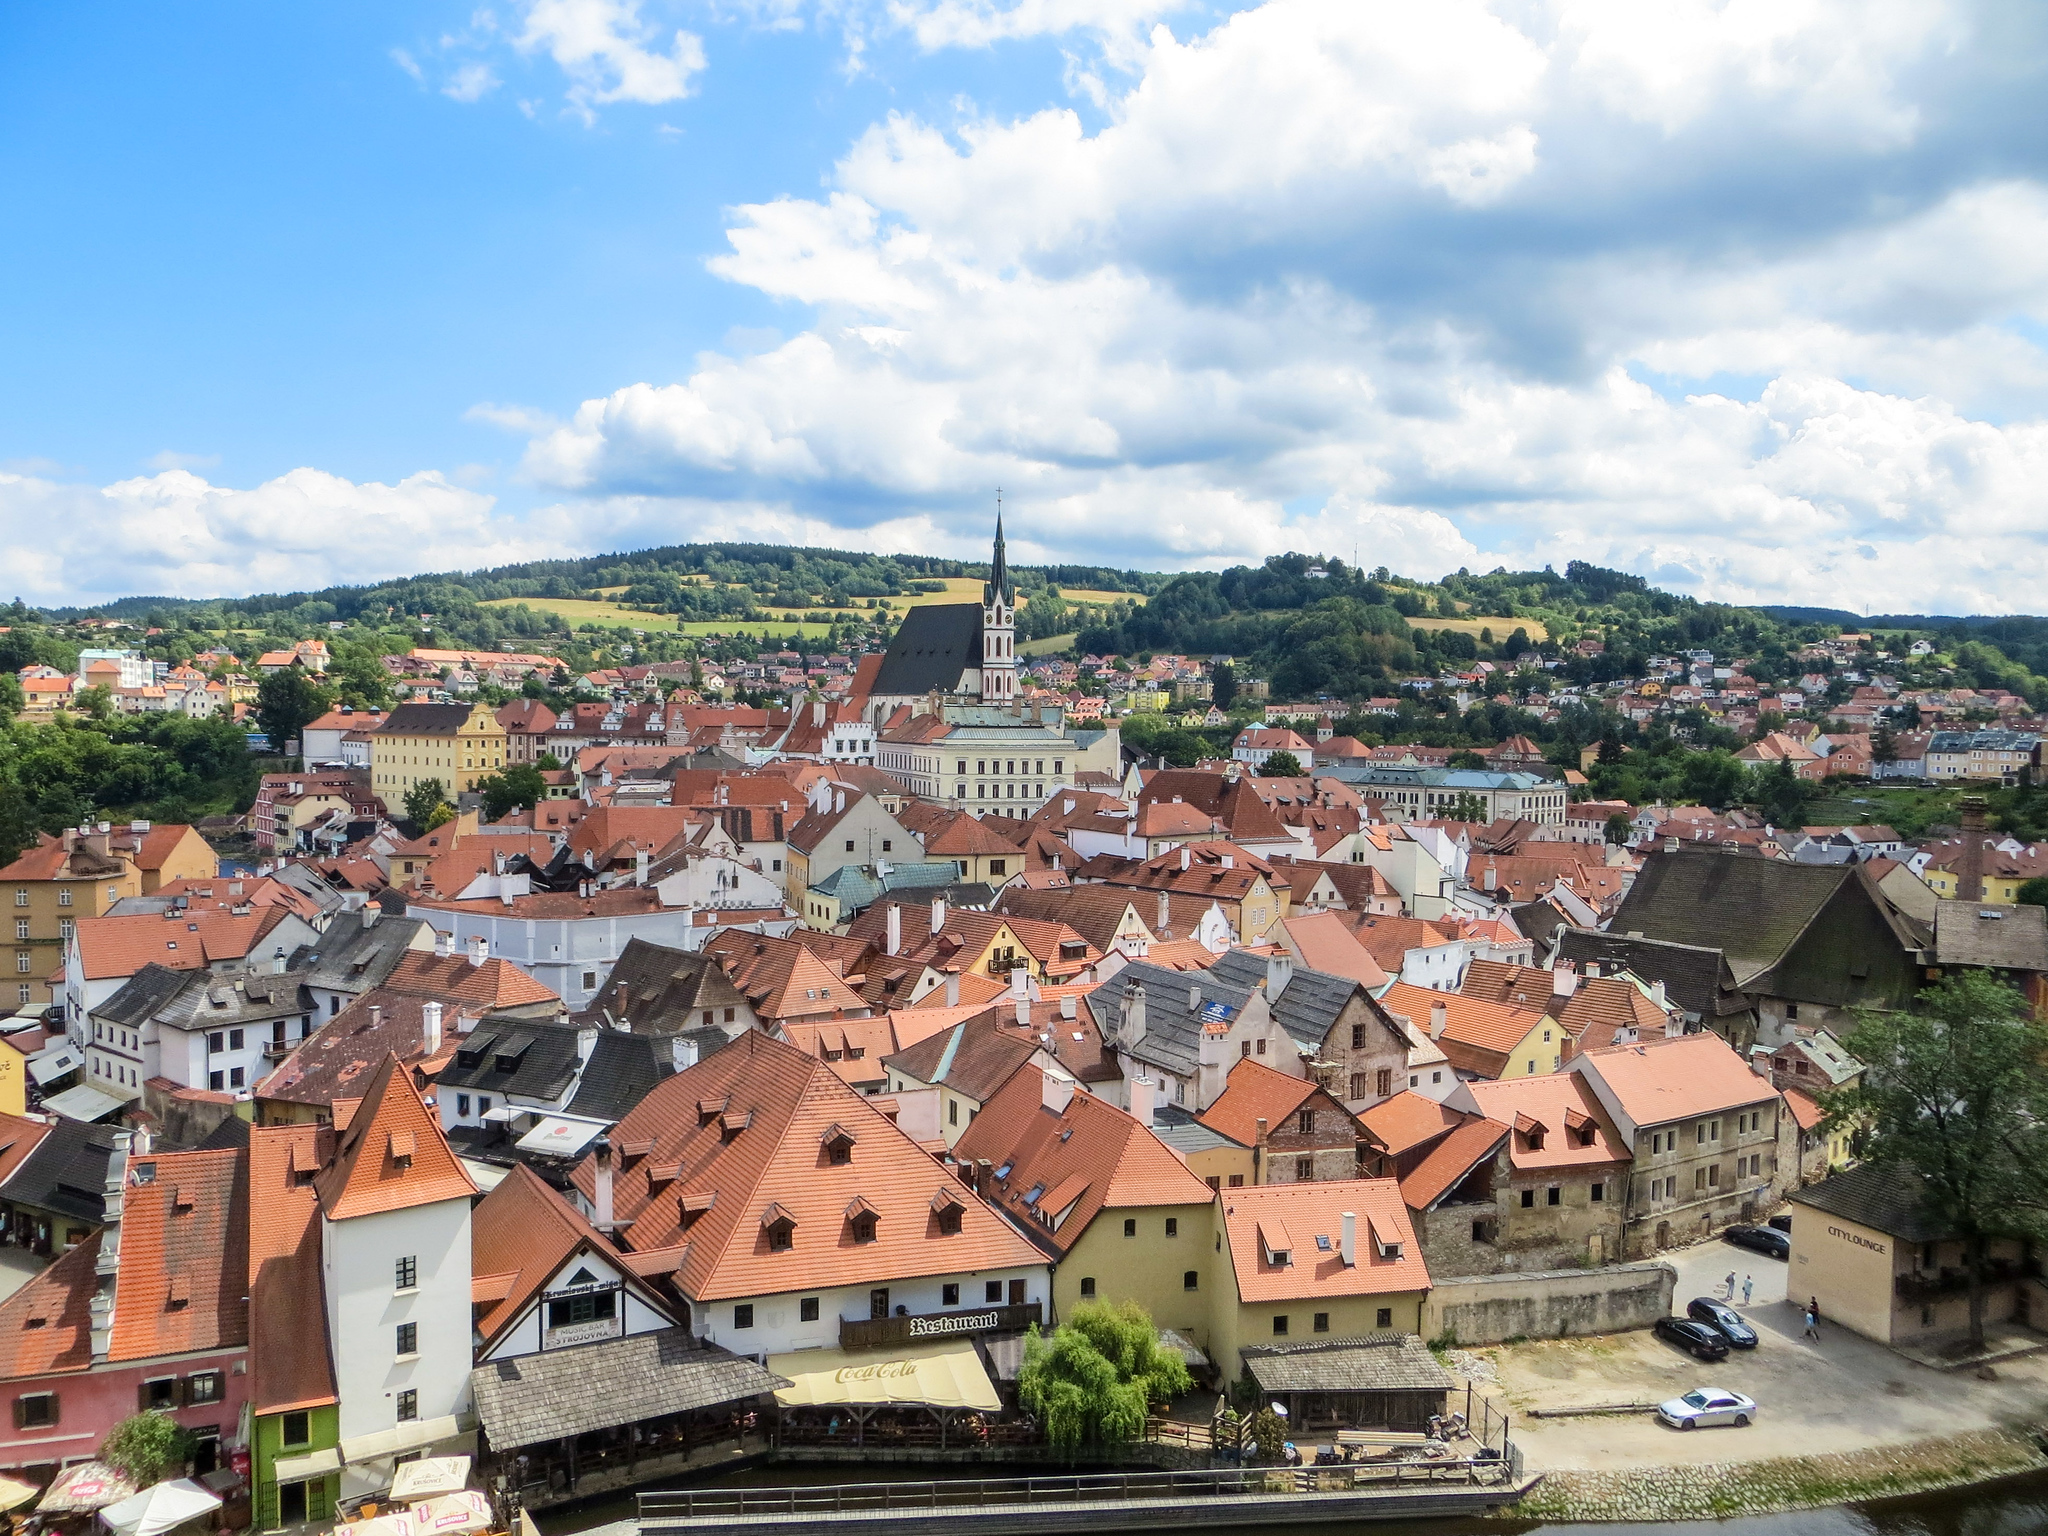 going to europe for the first time? don't skip over small towns like cesky krumlov!